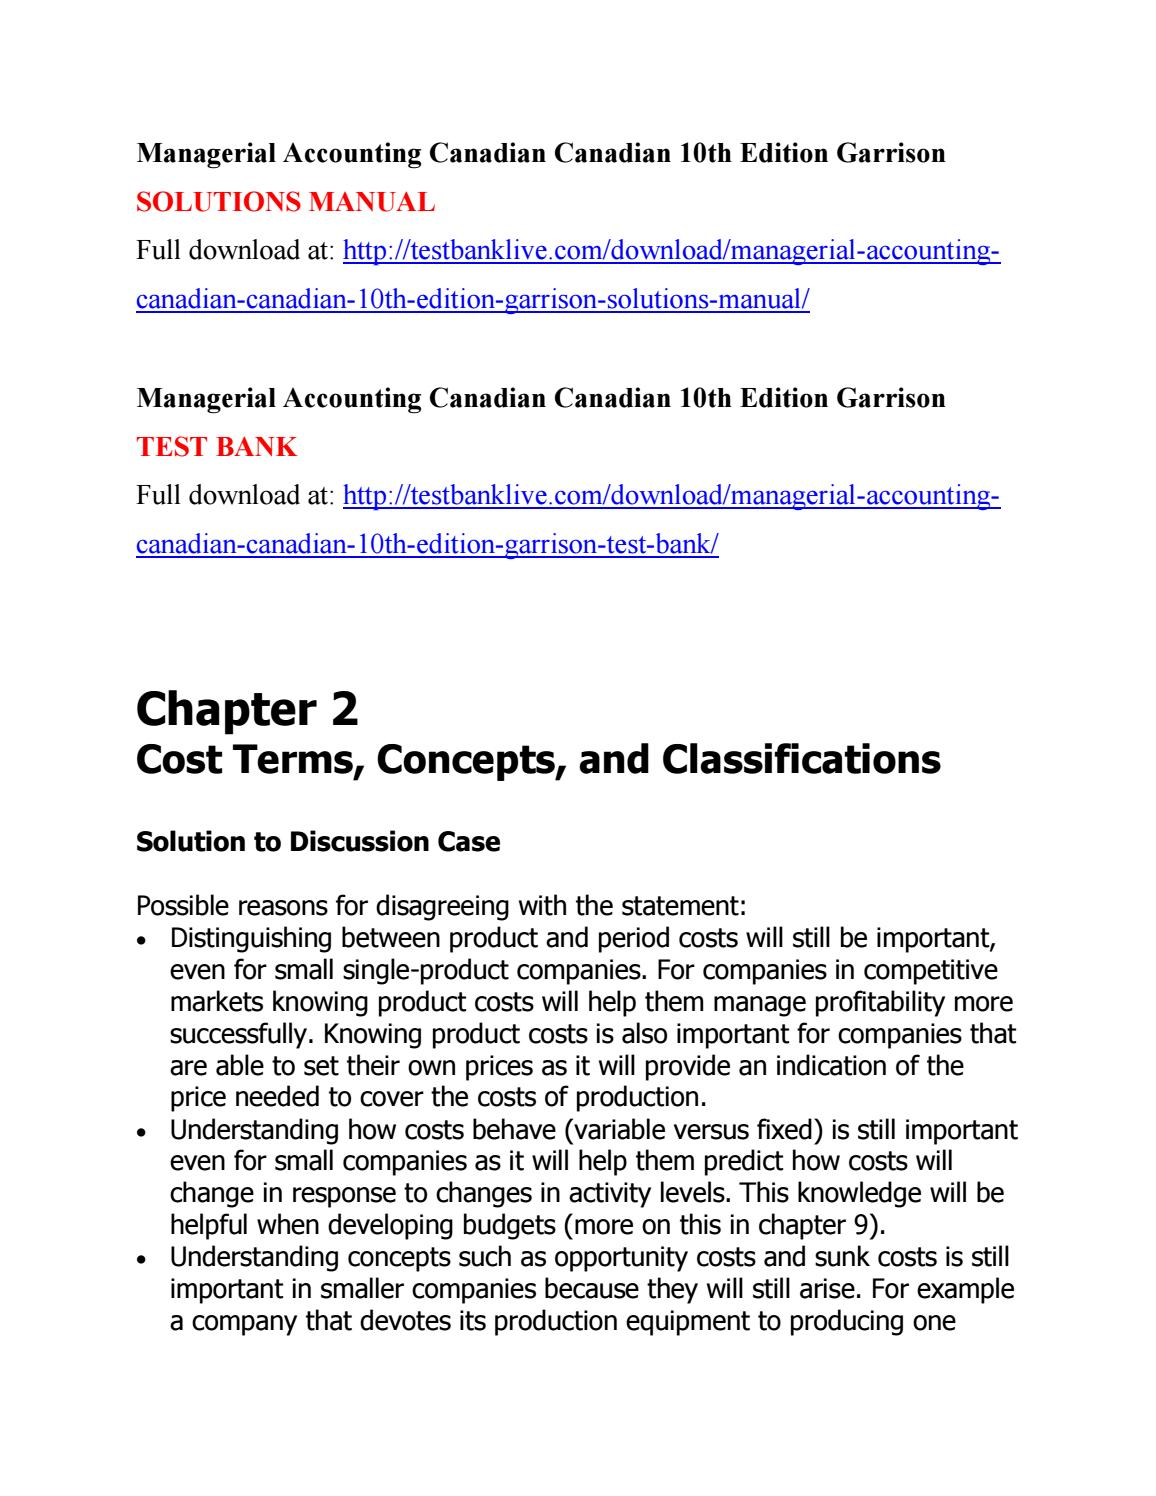 Managerial accounting canadian canadian 10th edition garrison solutions  manual by lmlm111 - issuu